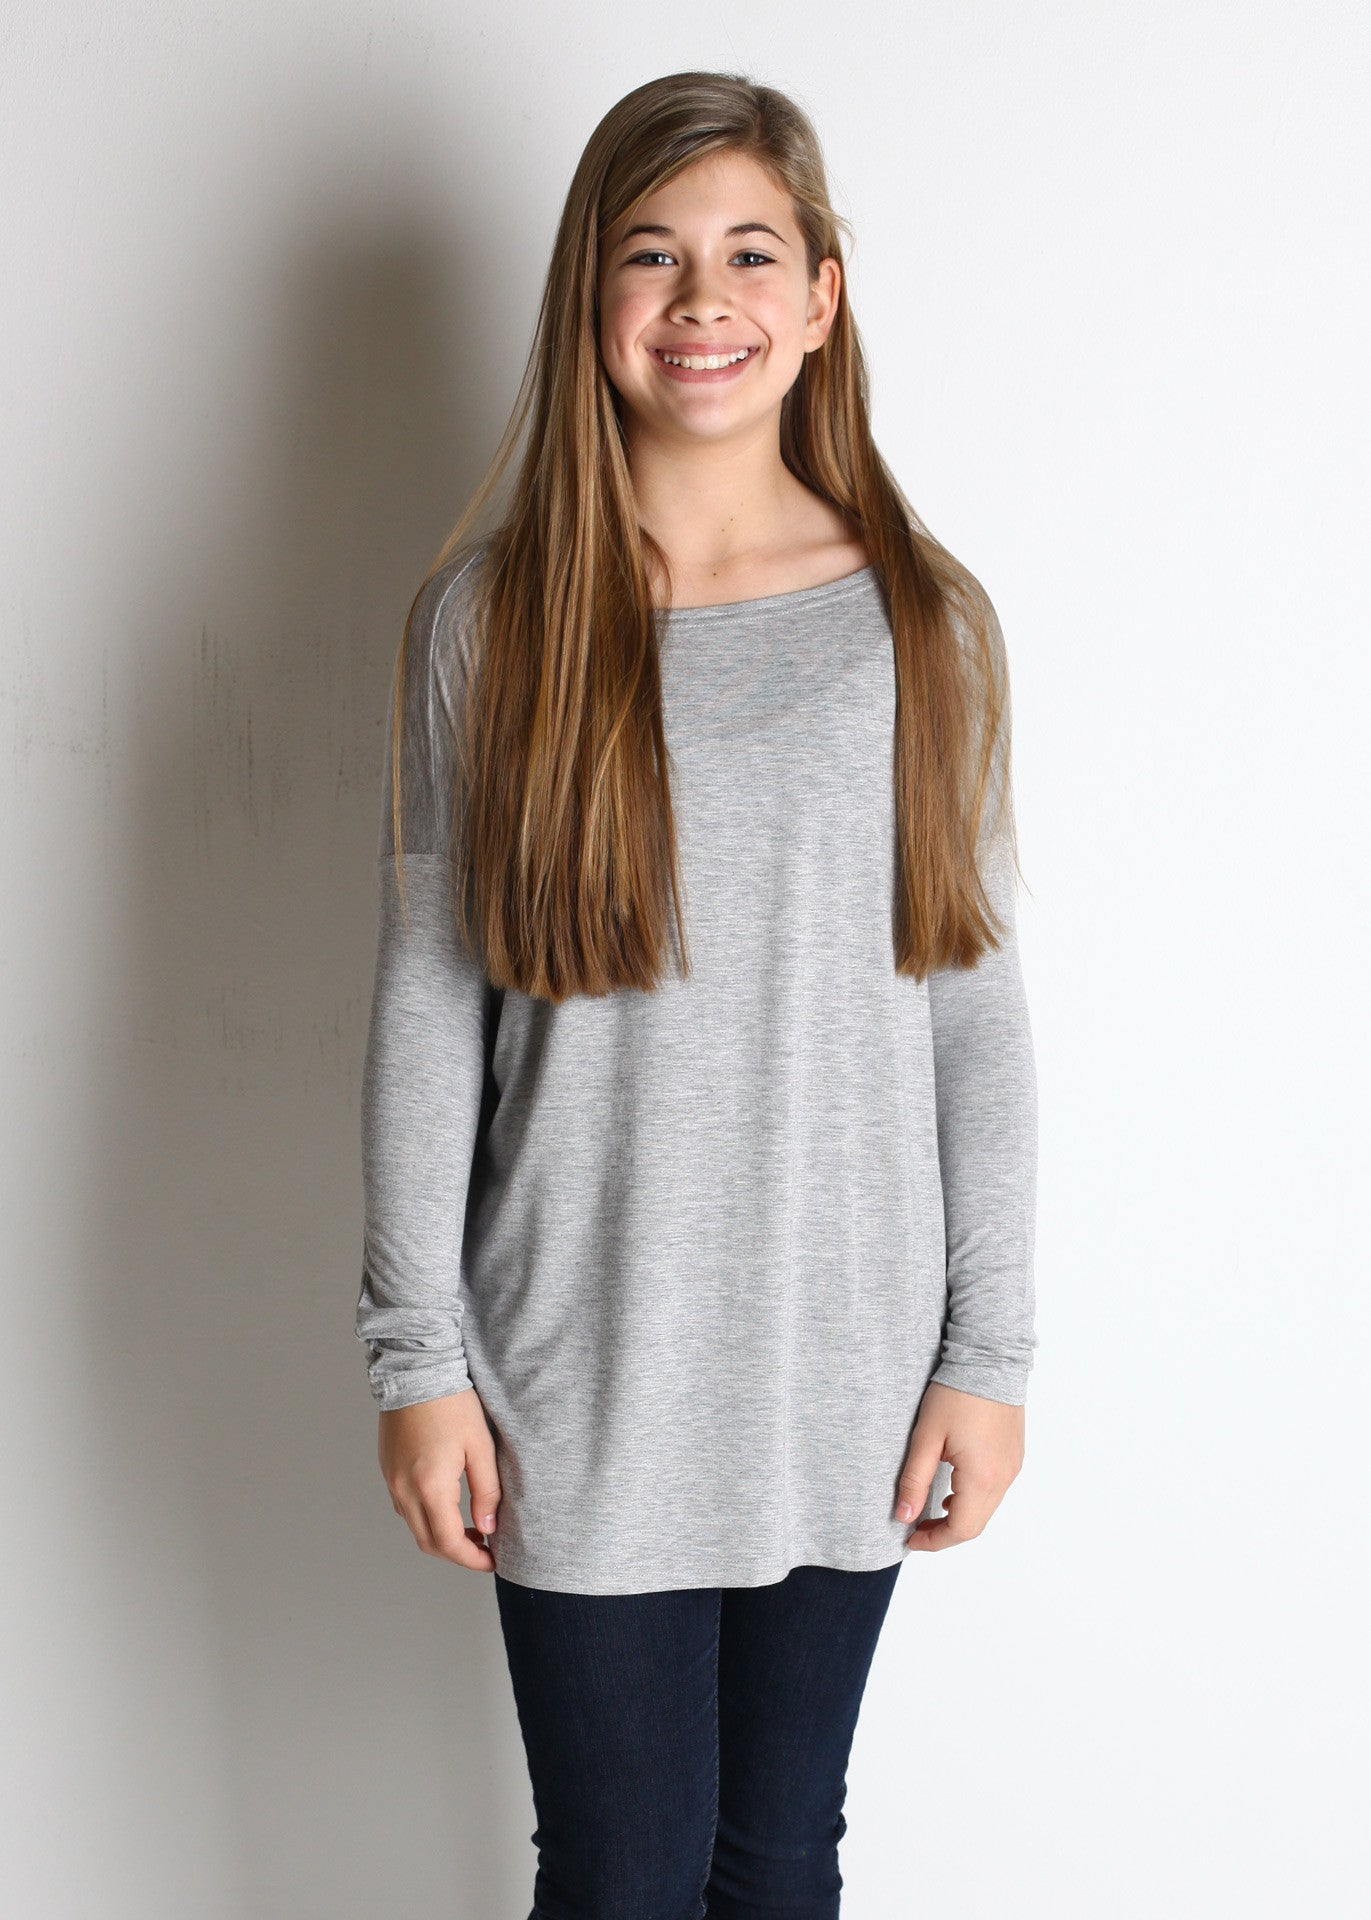 Original Kids Long Sleeve Top - Piko Clearance Center - 15